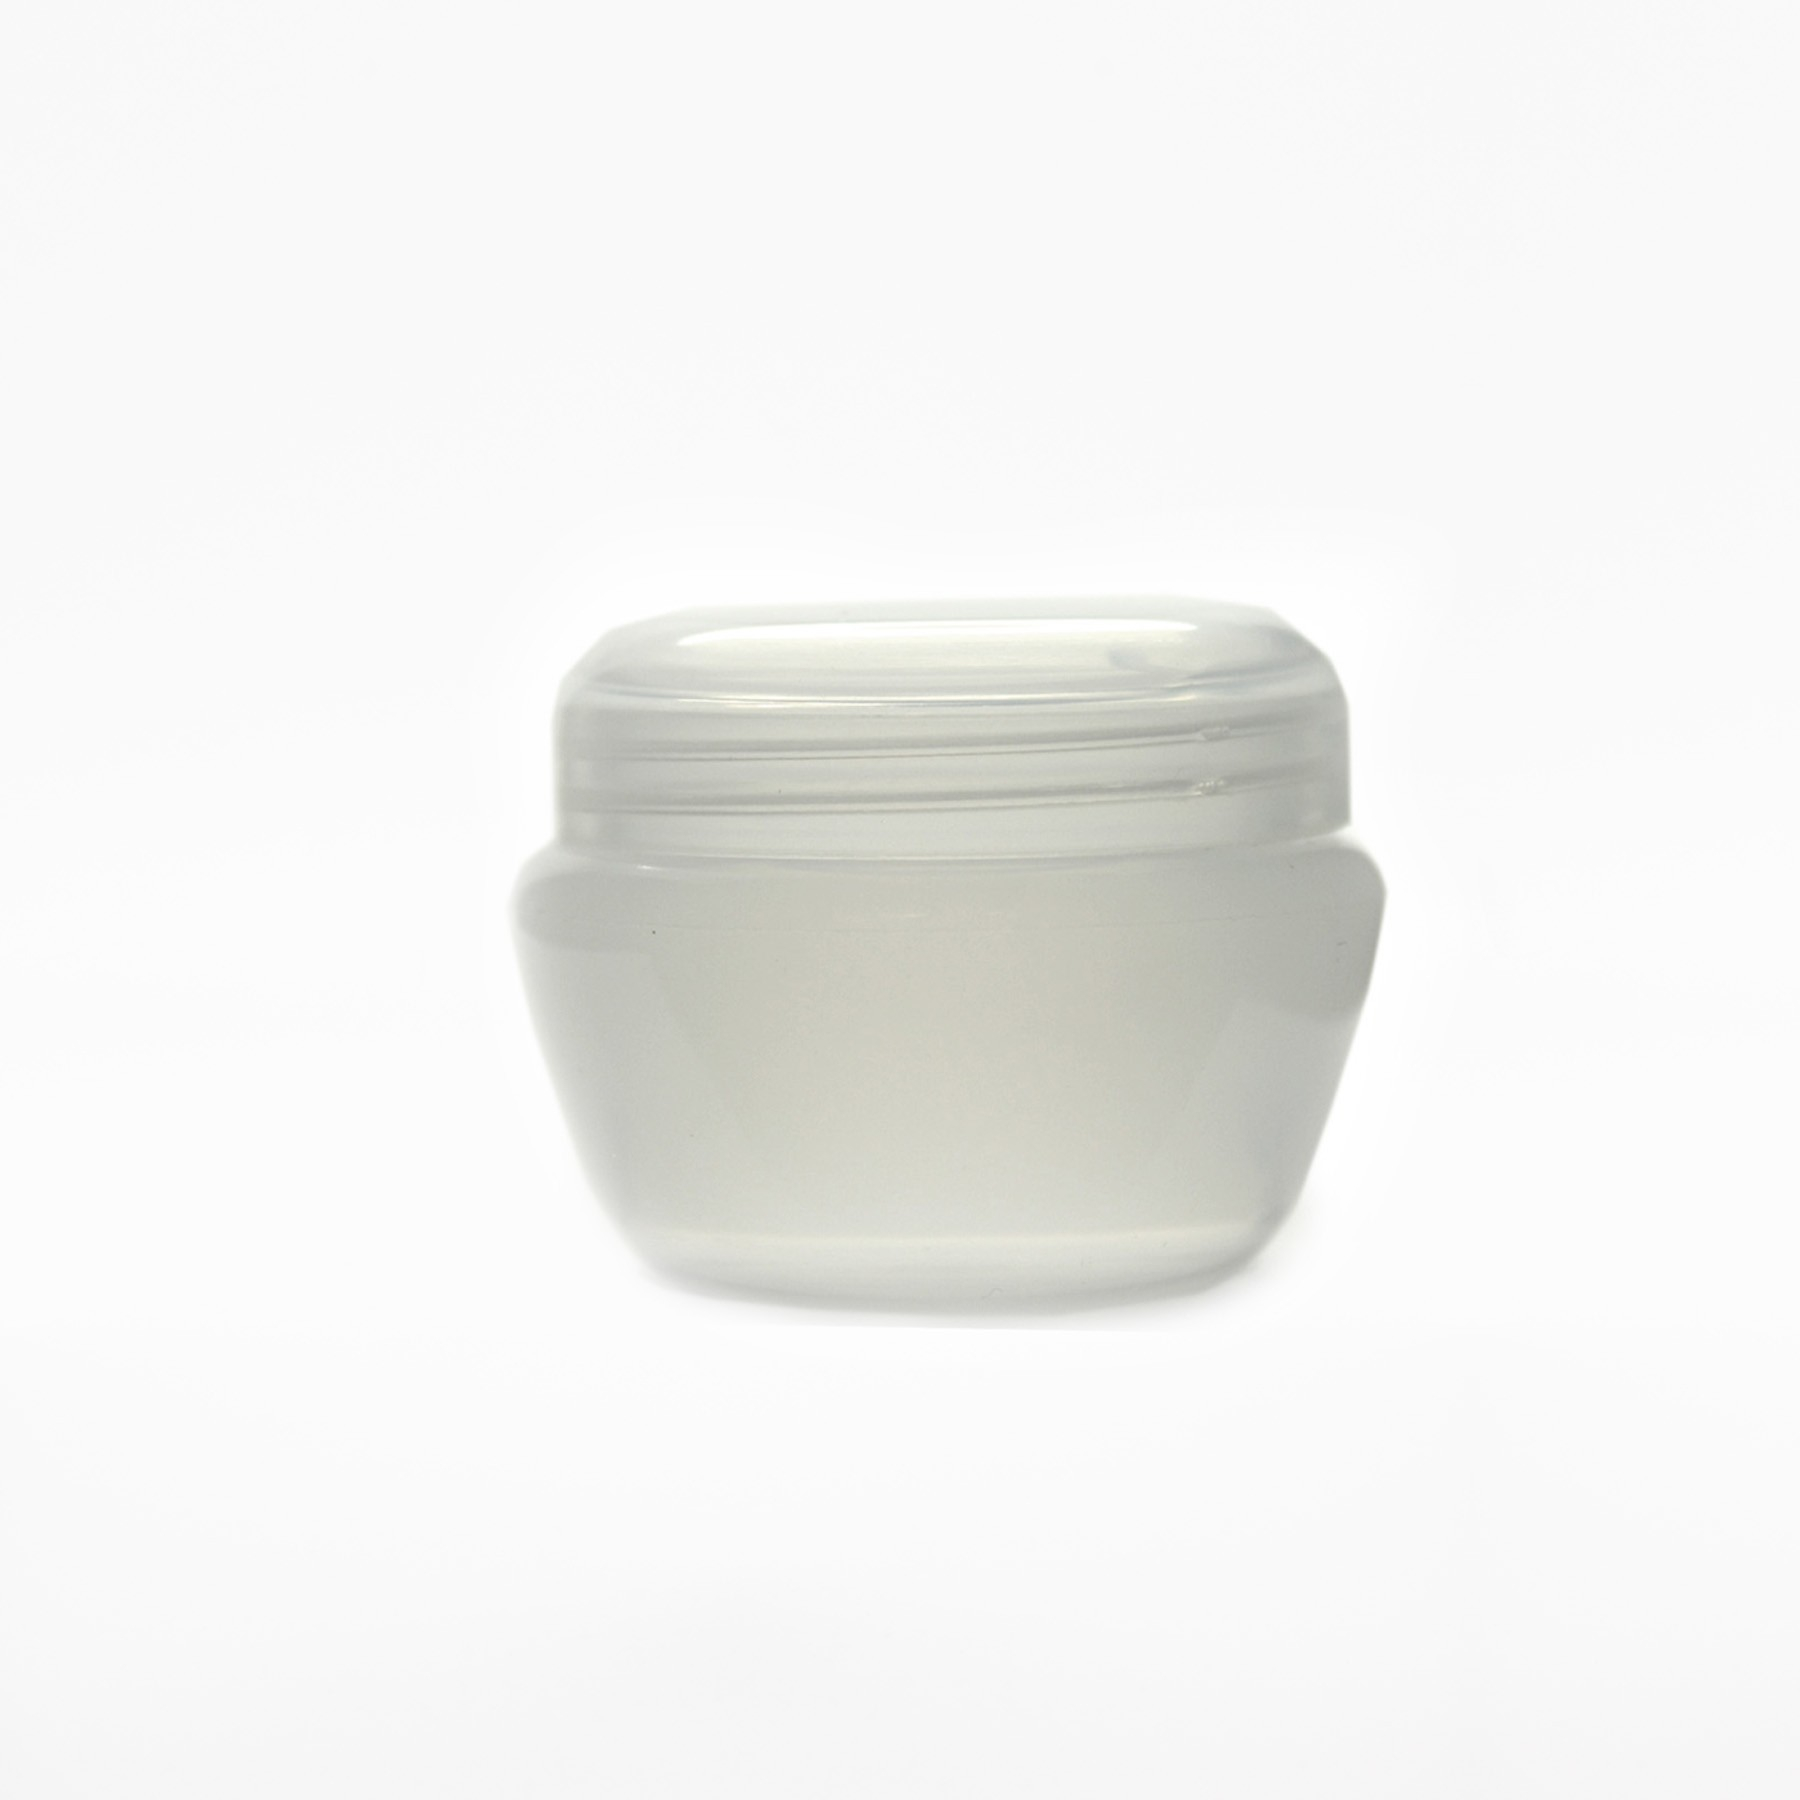 30ml COSMETIC JARS NATURAL COMPLETE WITH SHIVE & LID